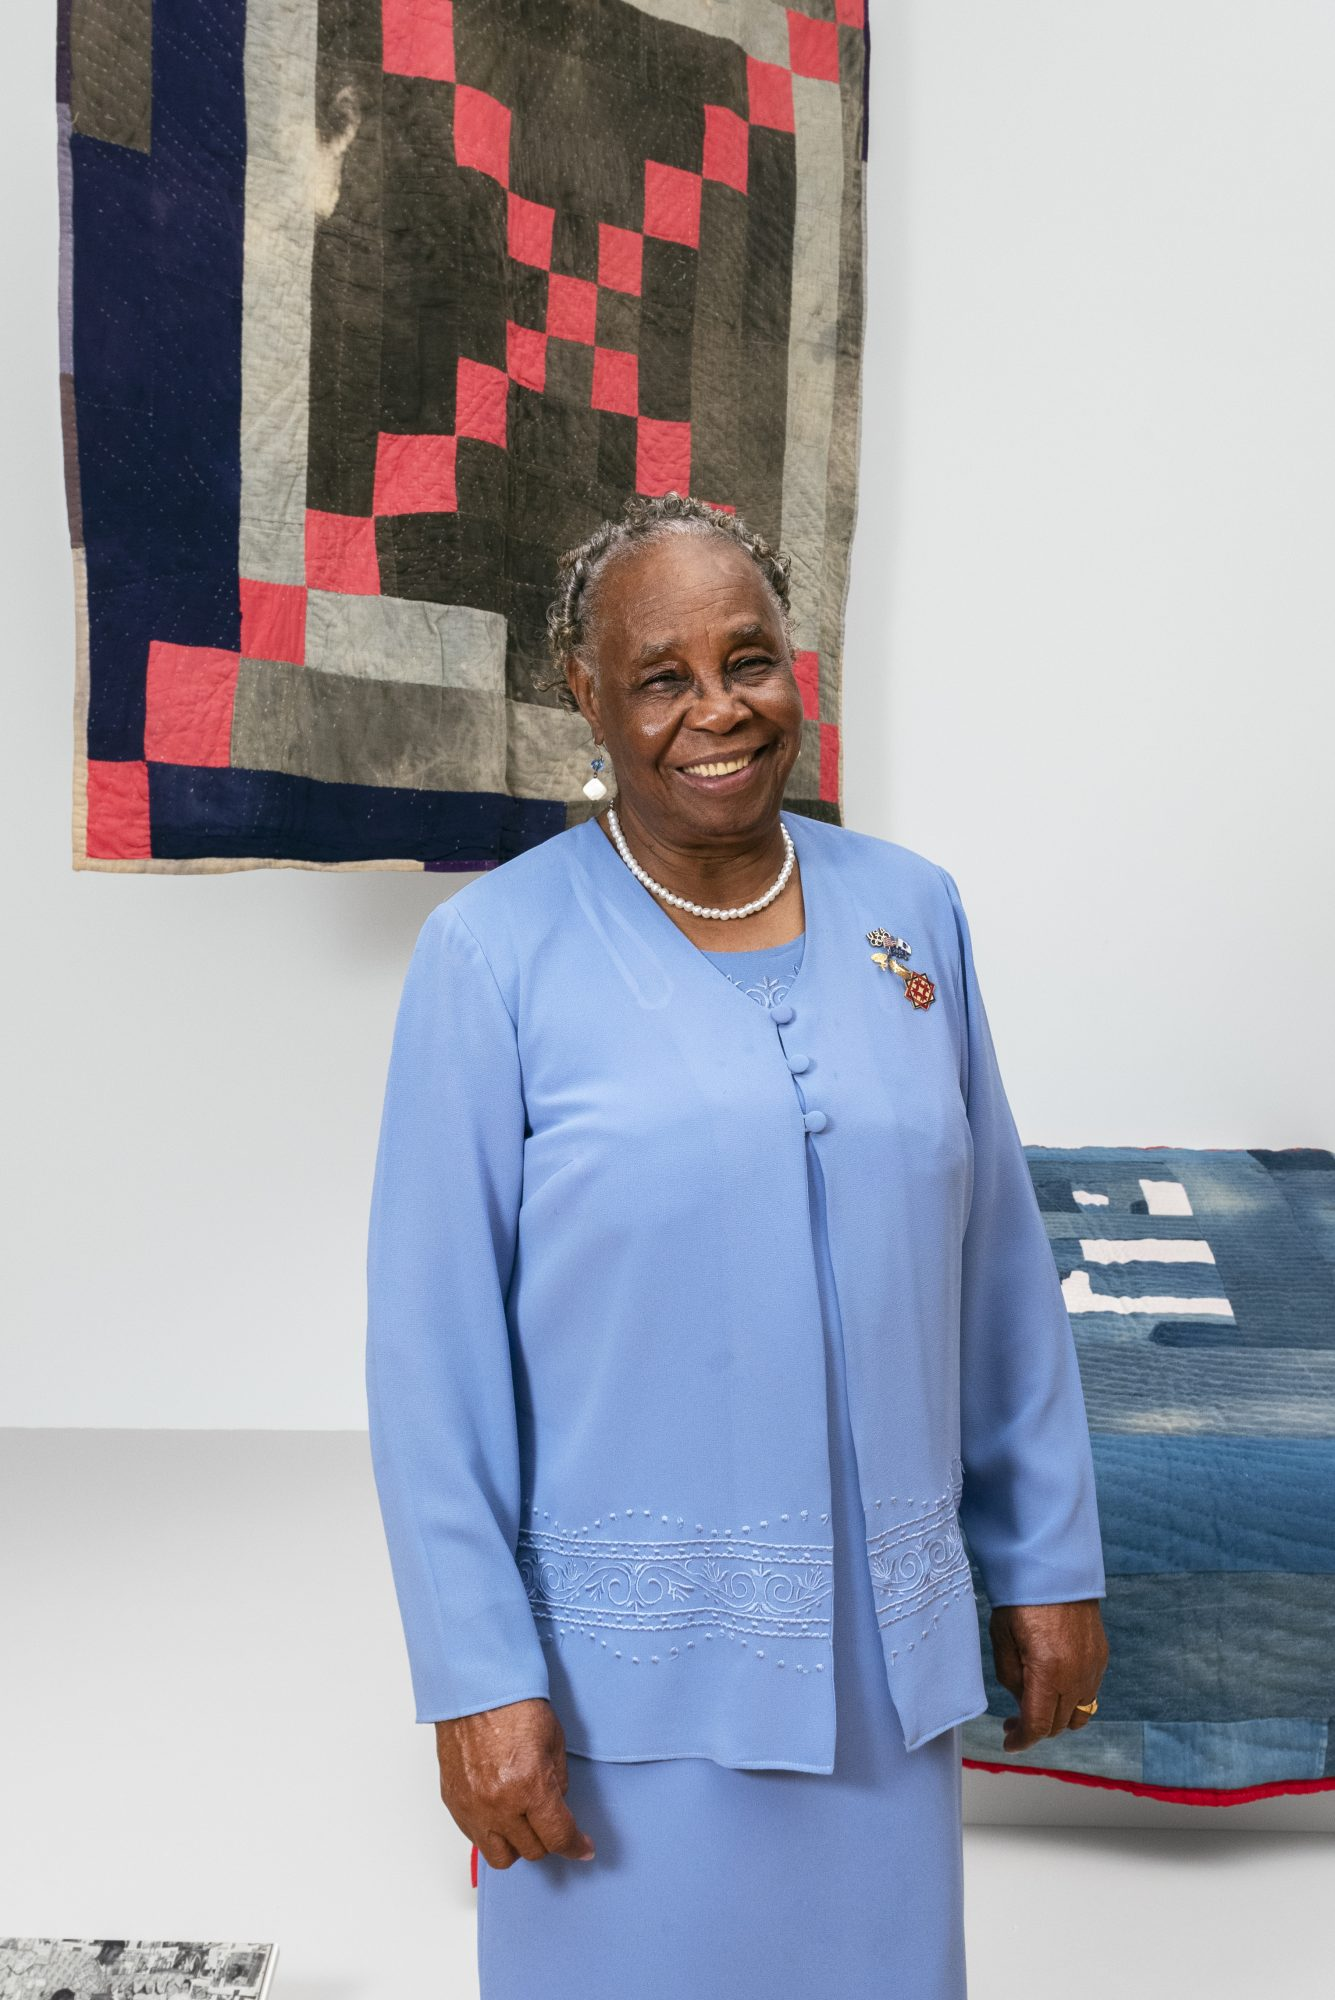 """Gee's Bend quilter Mary Lee Bendolph in the exhibition """"Souls Grown Deep: Artists of the African American South"""" at the Philadelphia Museum of Art."""